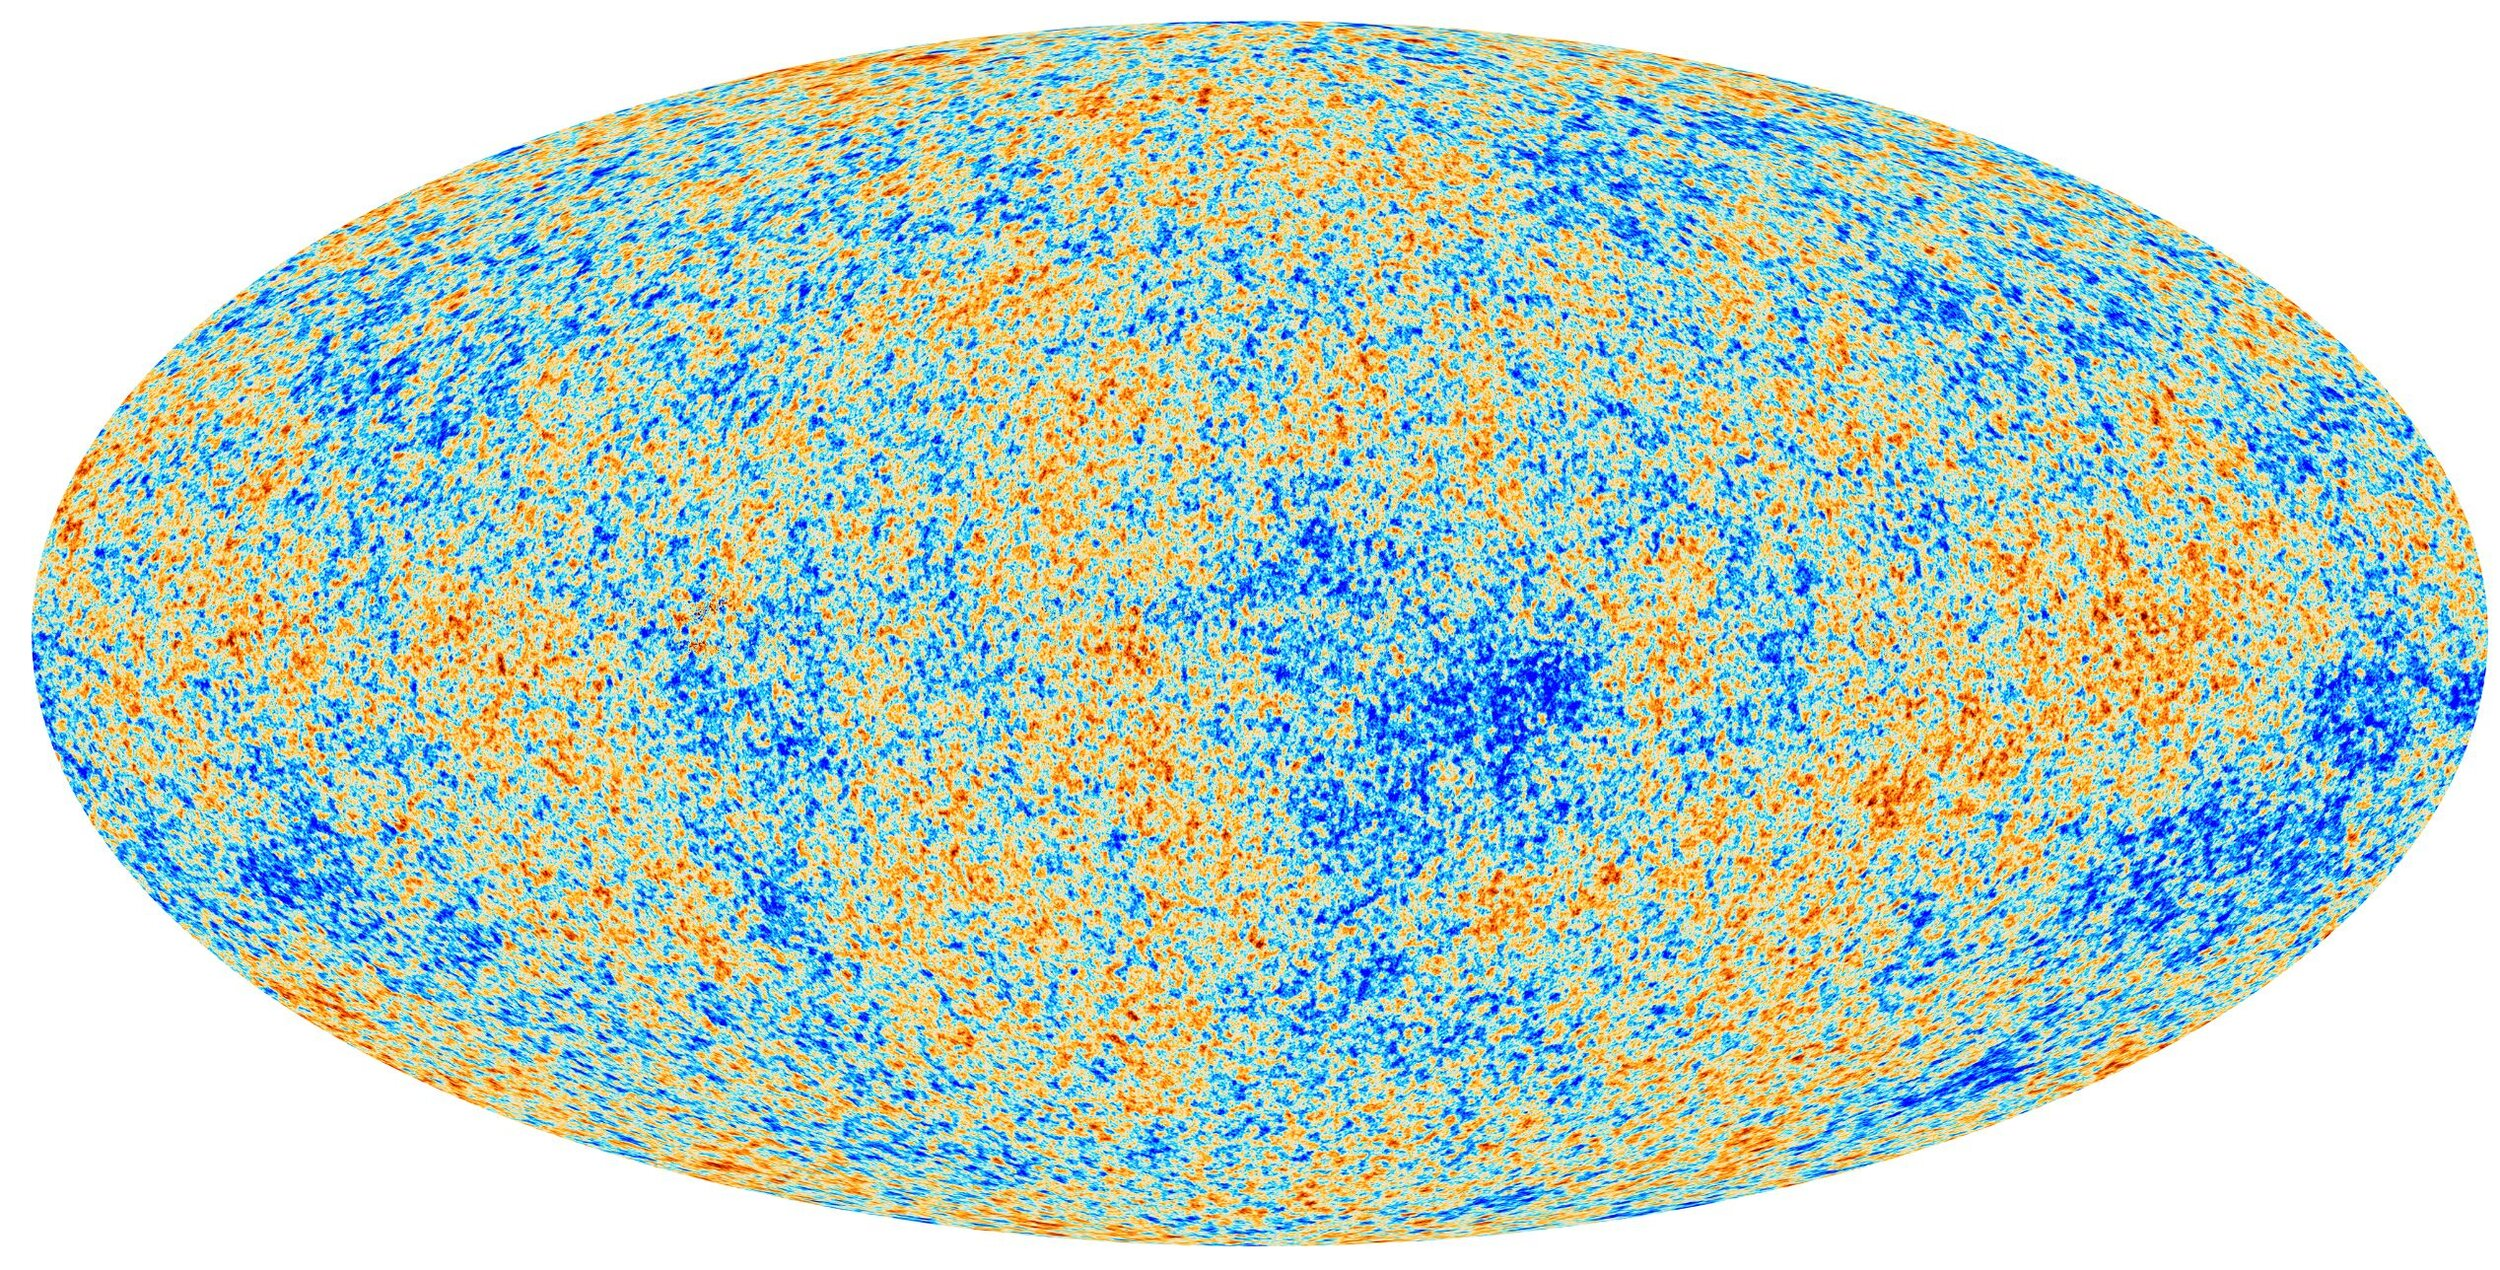 Ripples in the cosmic microwave background reveal the presence of dark matter. - Image Credits:  ESA, Planck Collaboration  (image is also used as banner image for this article)